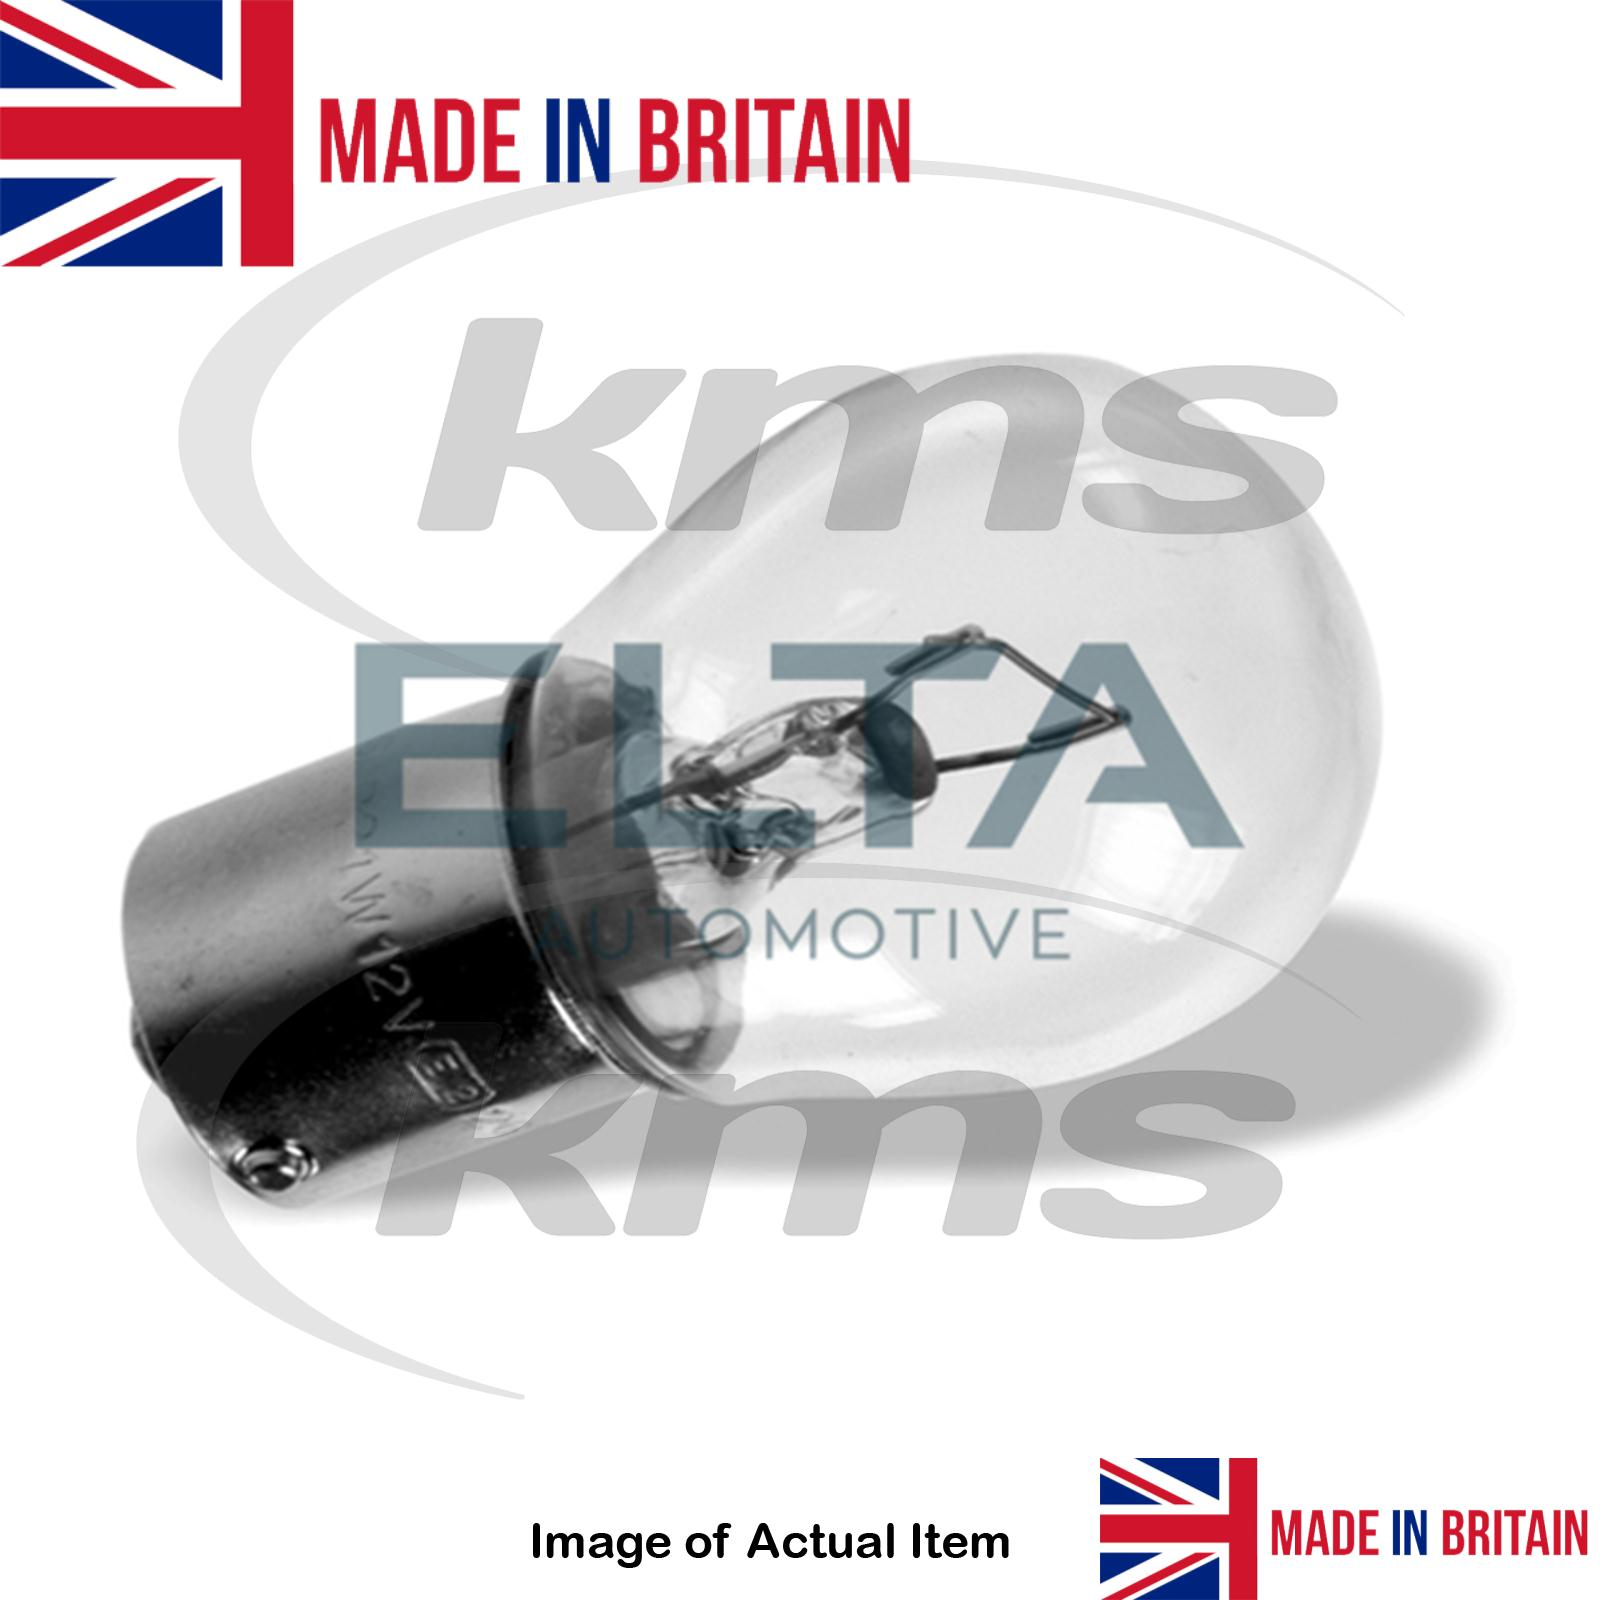 GENUINE Lucas Stop /& Tail Bulb 24v 21w SCC OE290 Box of 10Connect 30540